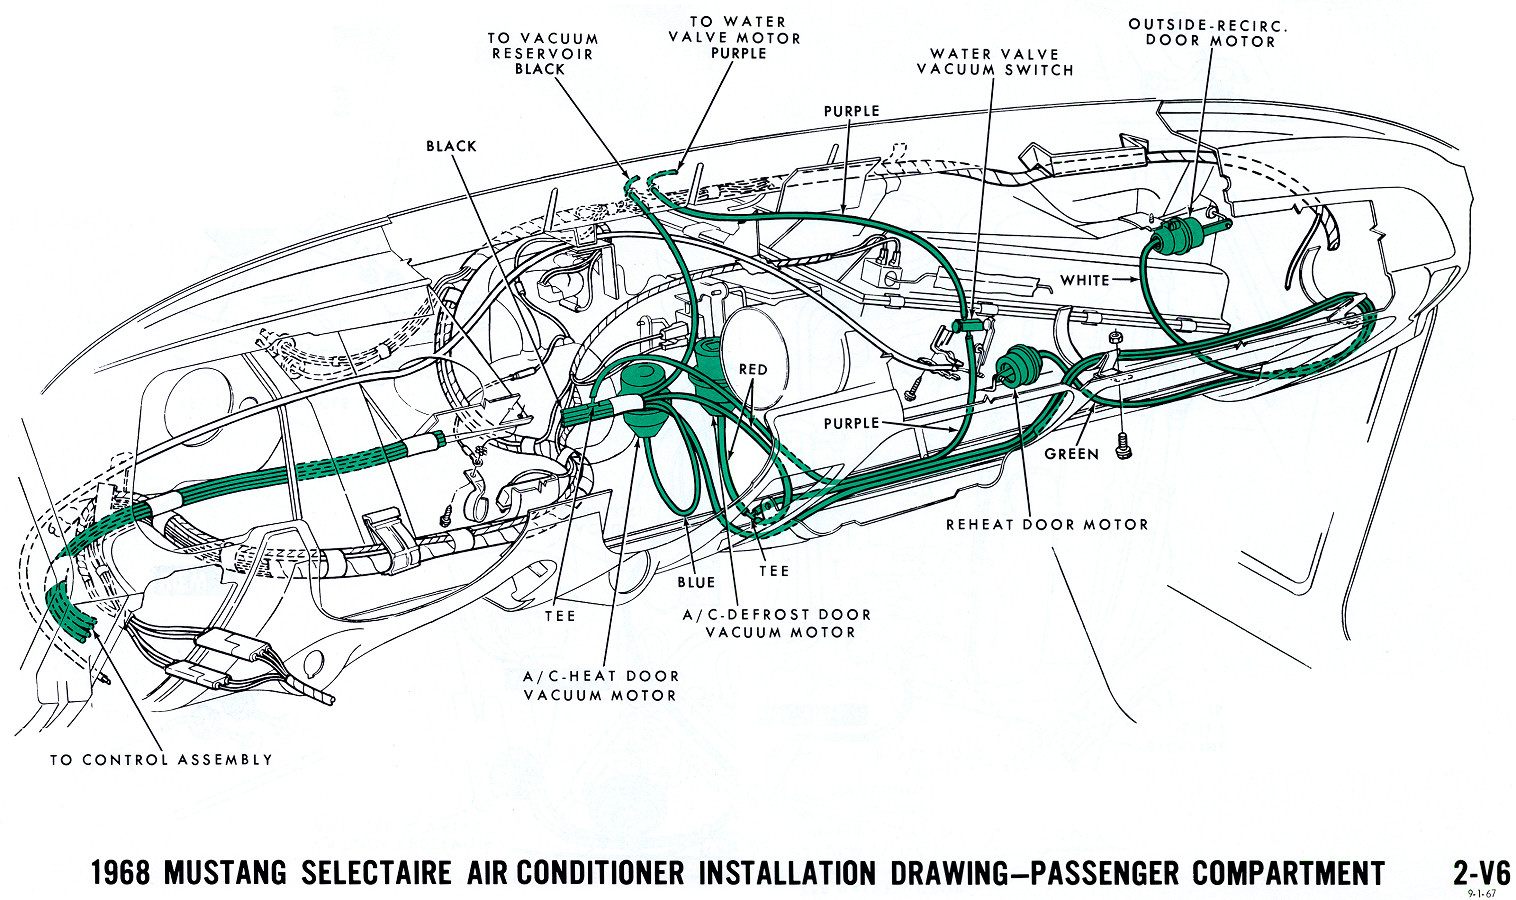 1968 mustang vacuum diagram air conditioning interior 1968 mustang wiring diagrams and vacuum schematics average joe 1965 mustang under dash wiring diagram at love-stories.co